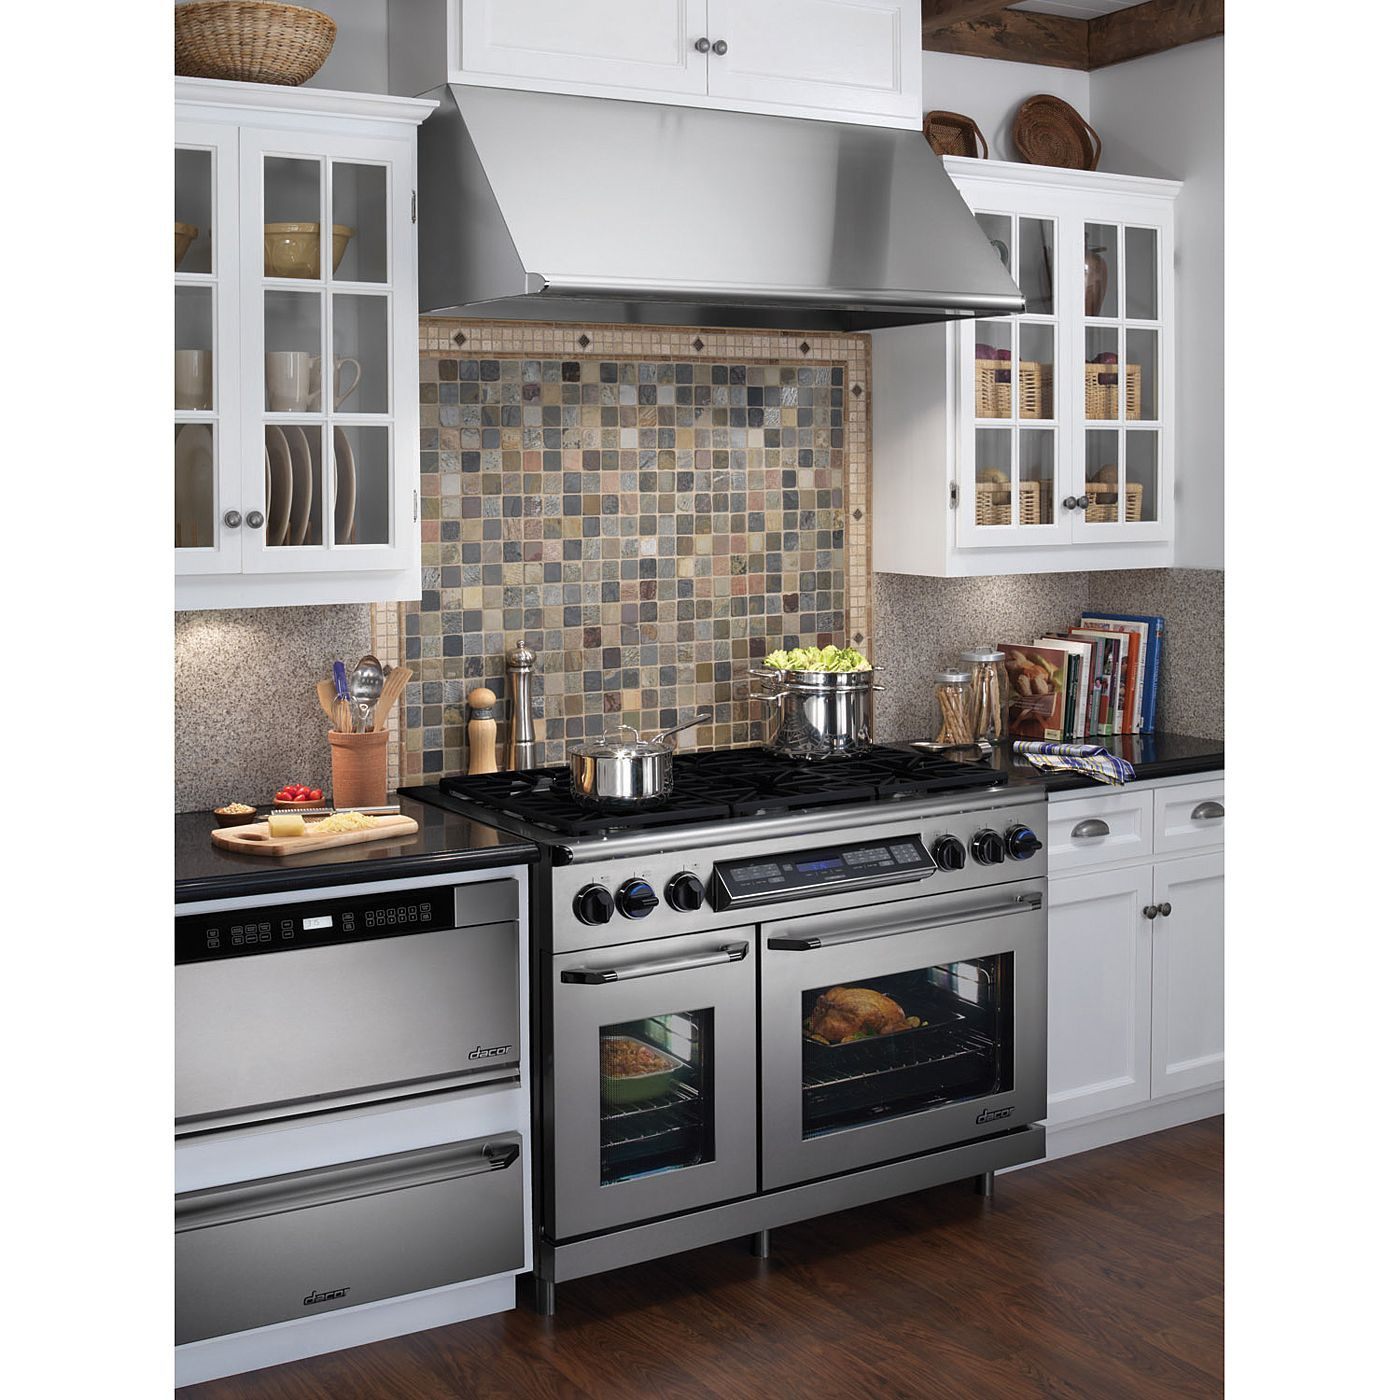 Kitchen Oven Cabinets: Double Oven/6 Burner Stove!